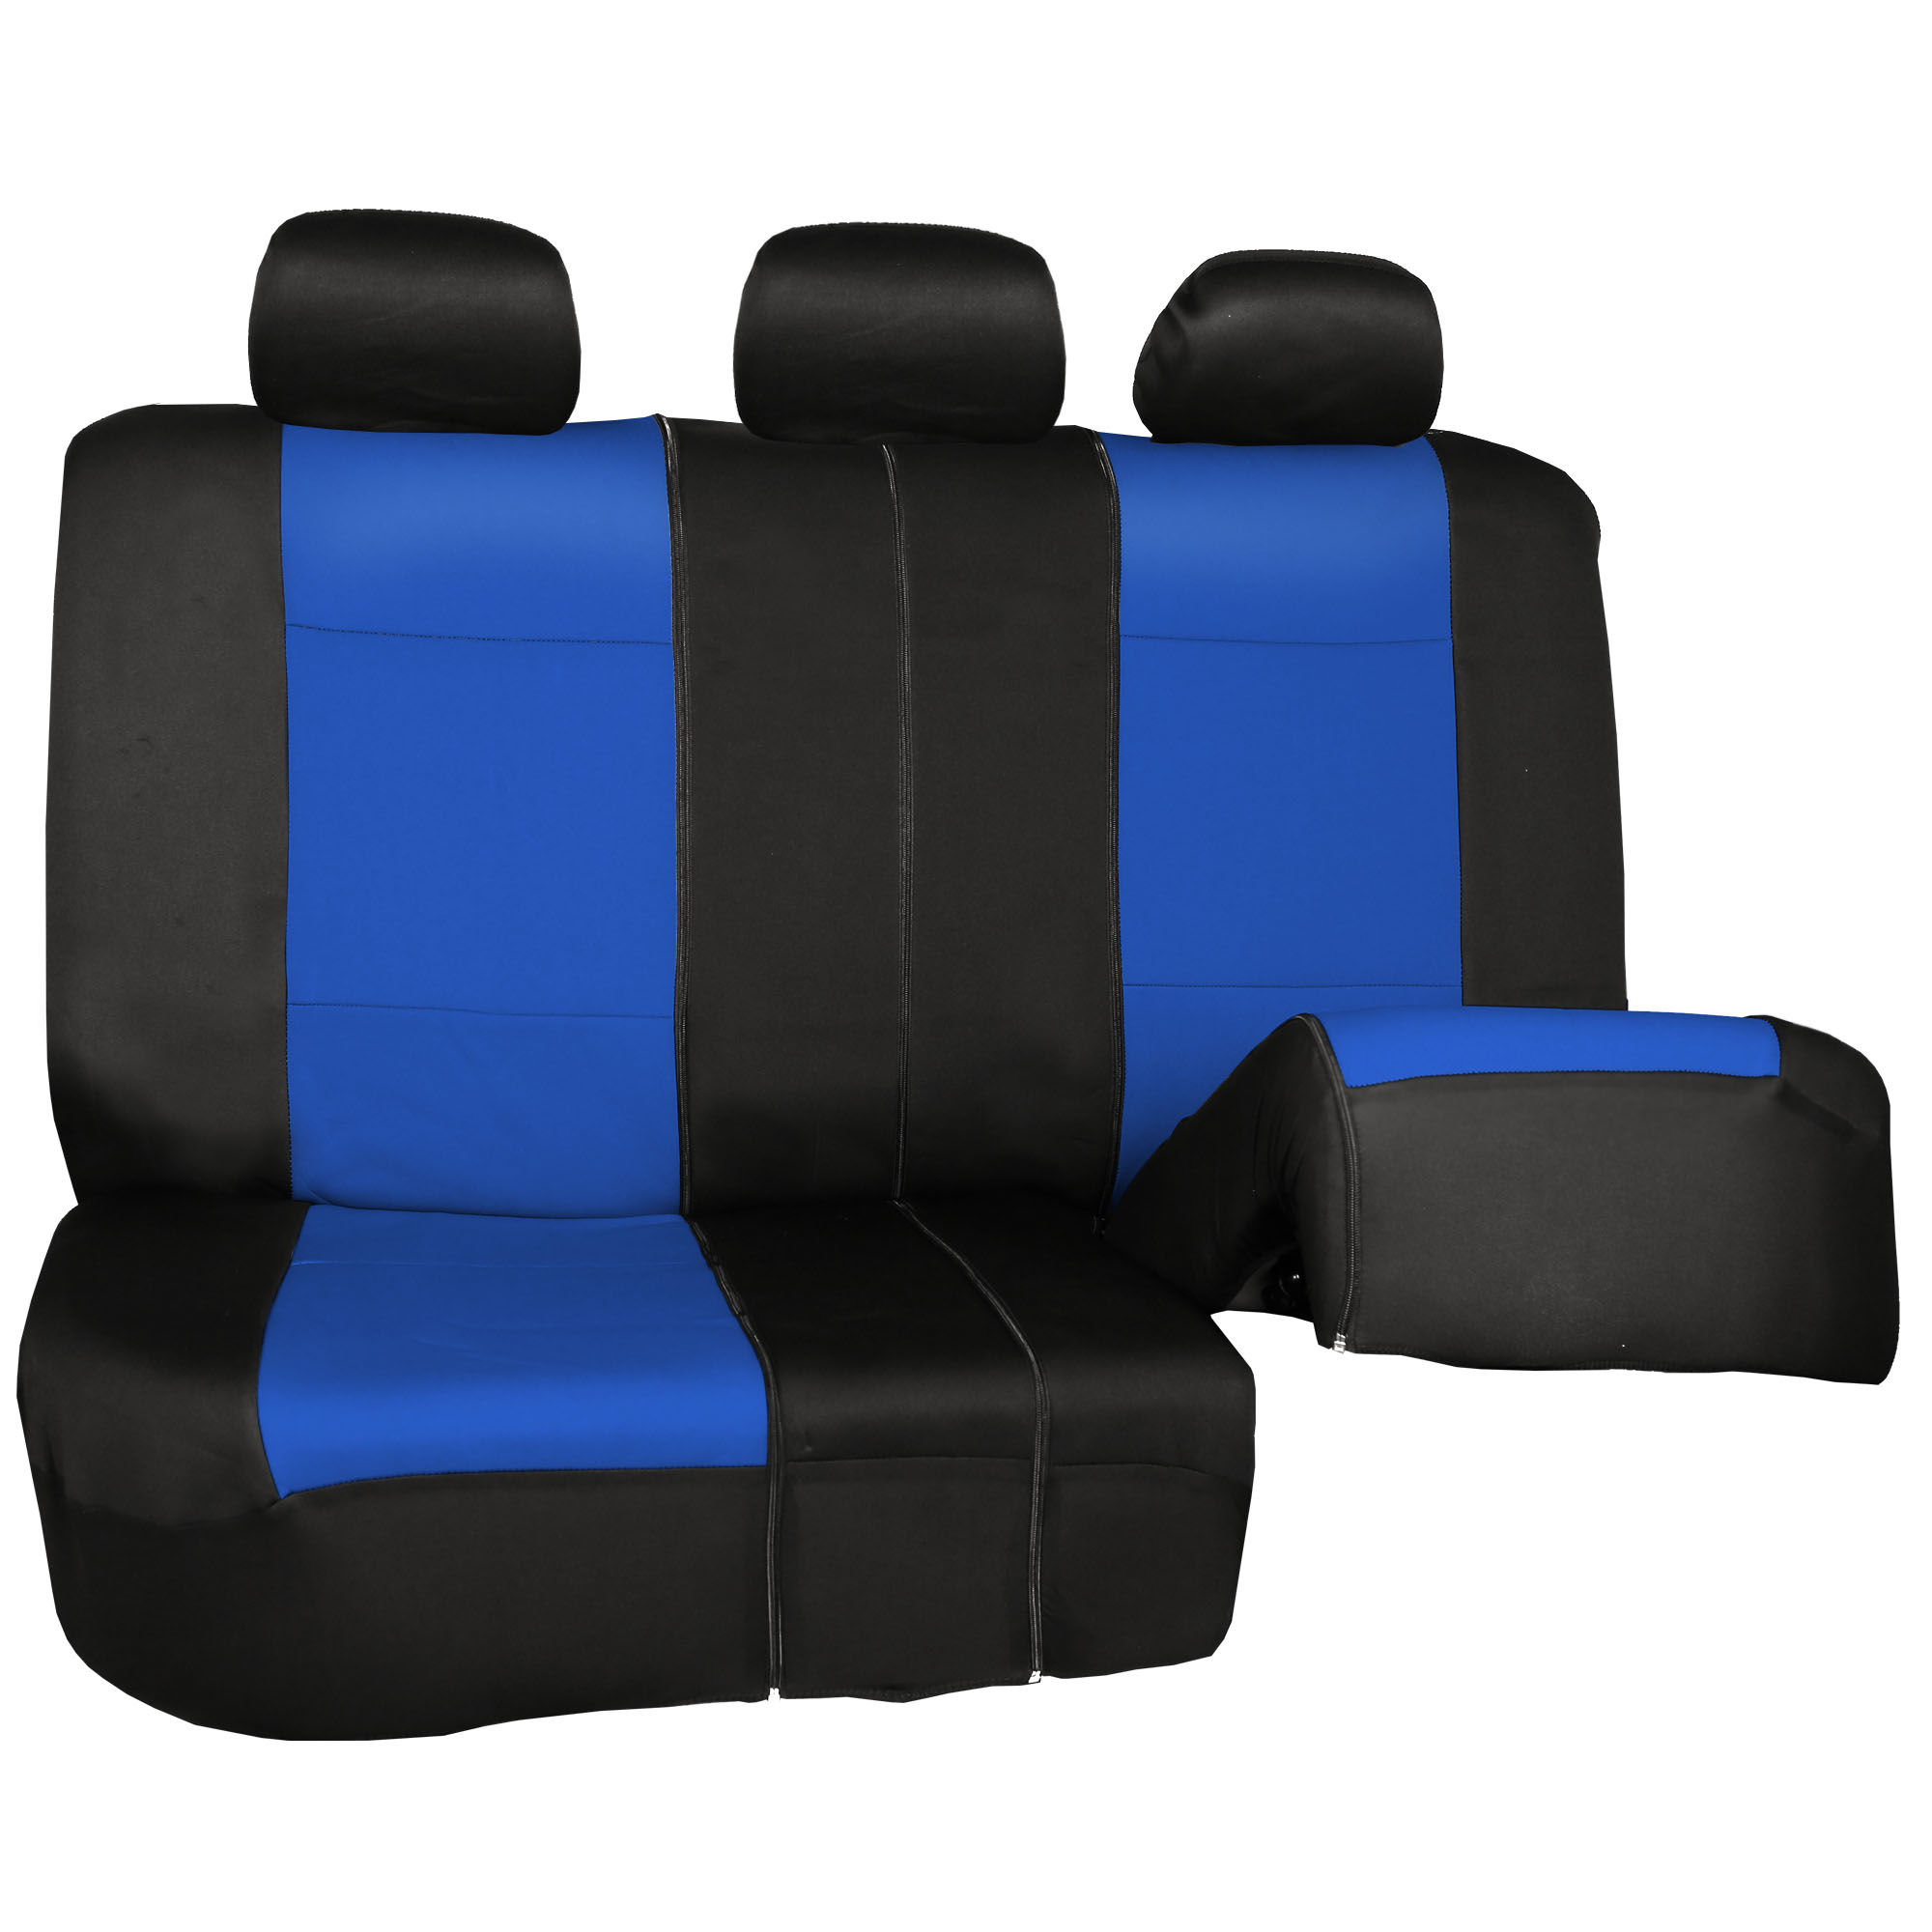 Car-Seat-Cover-Neoprene-Waterproof-Pet-Proof-Full-Set-Cover-With-Dash-Pad thumbnail 25